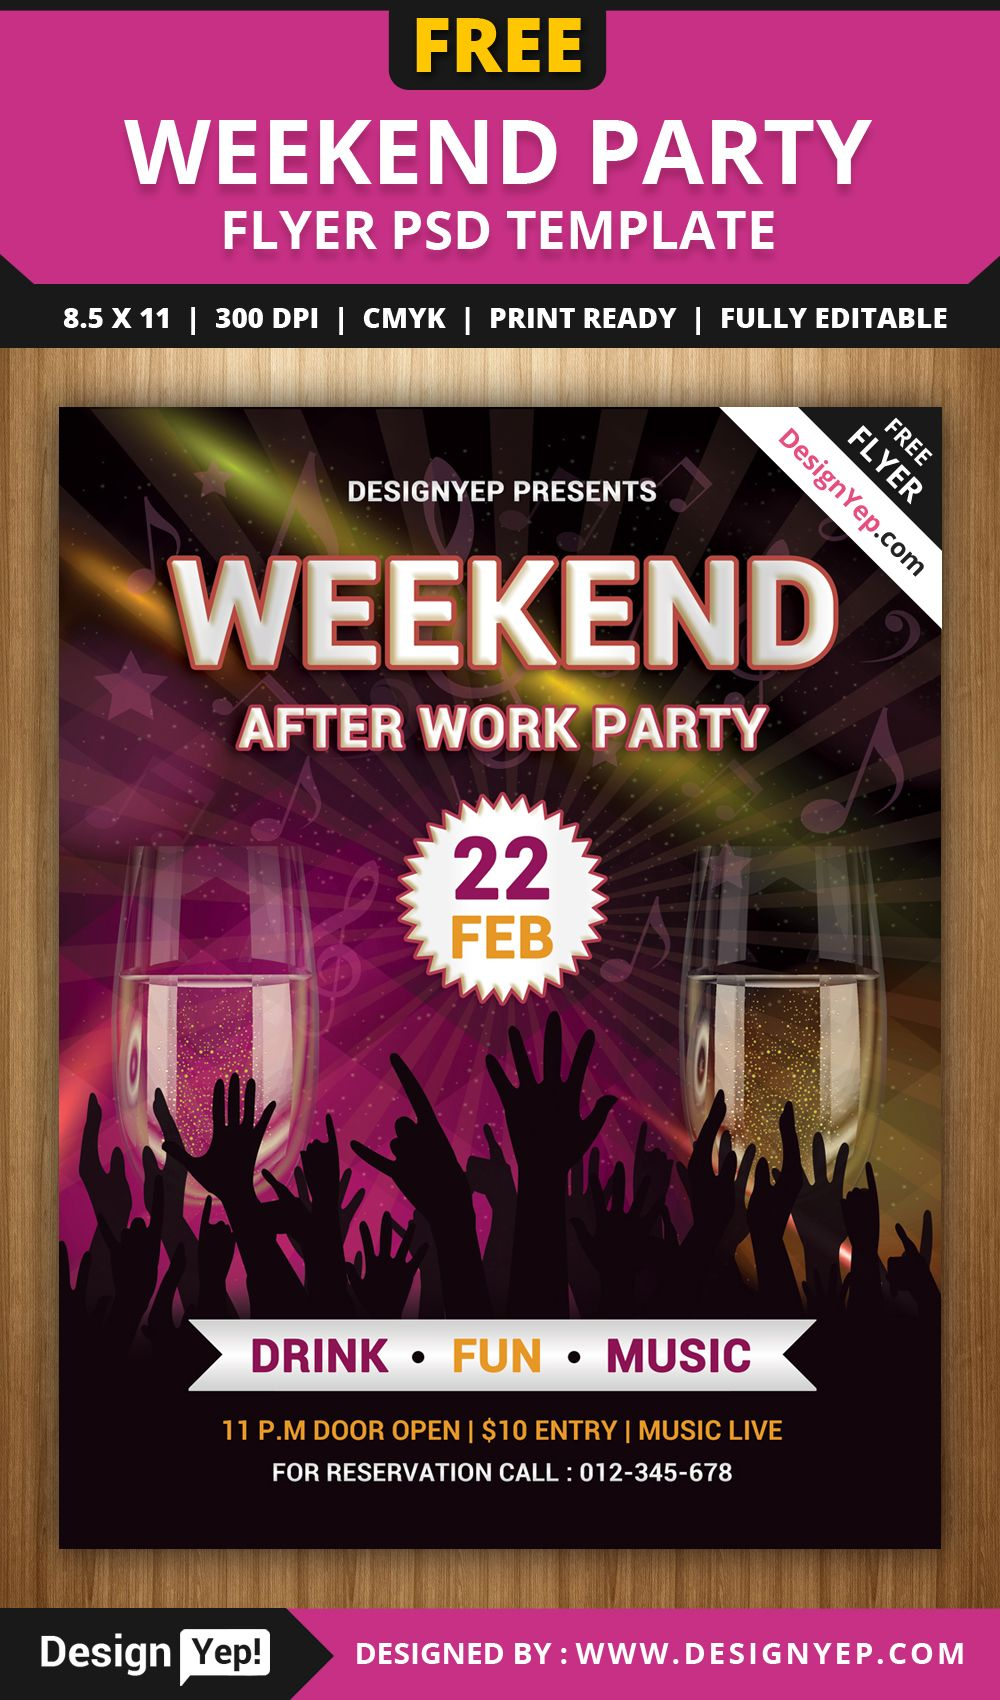 Free-Weekend-Party-Flyer-PSD-Template-7788-DesignYep | Free Flyers ...